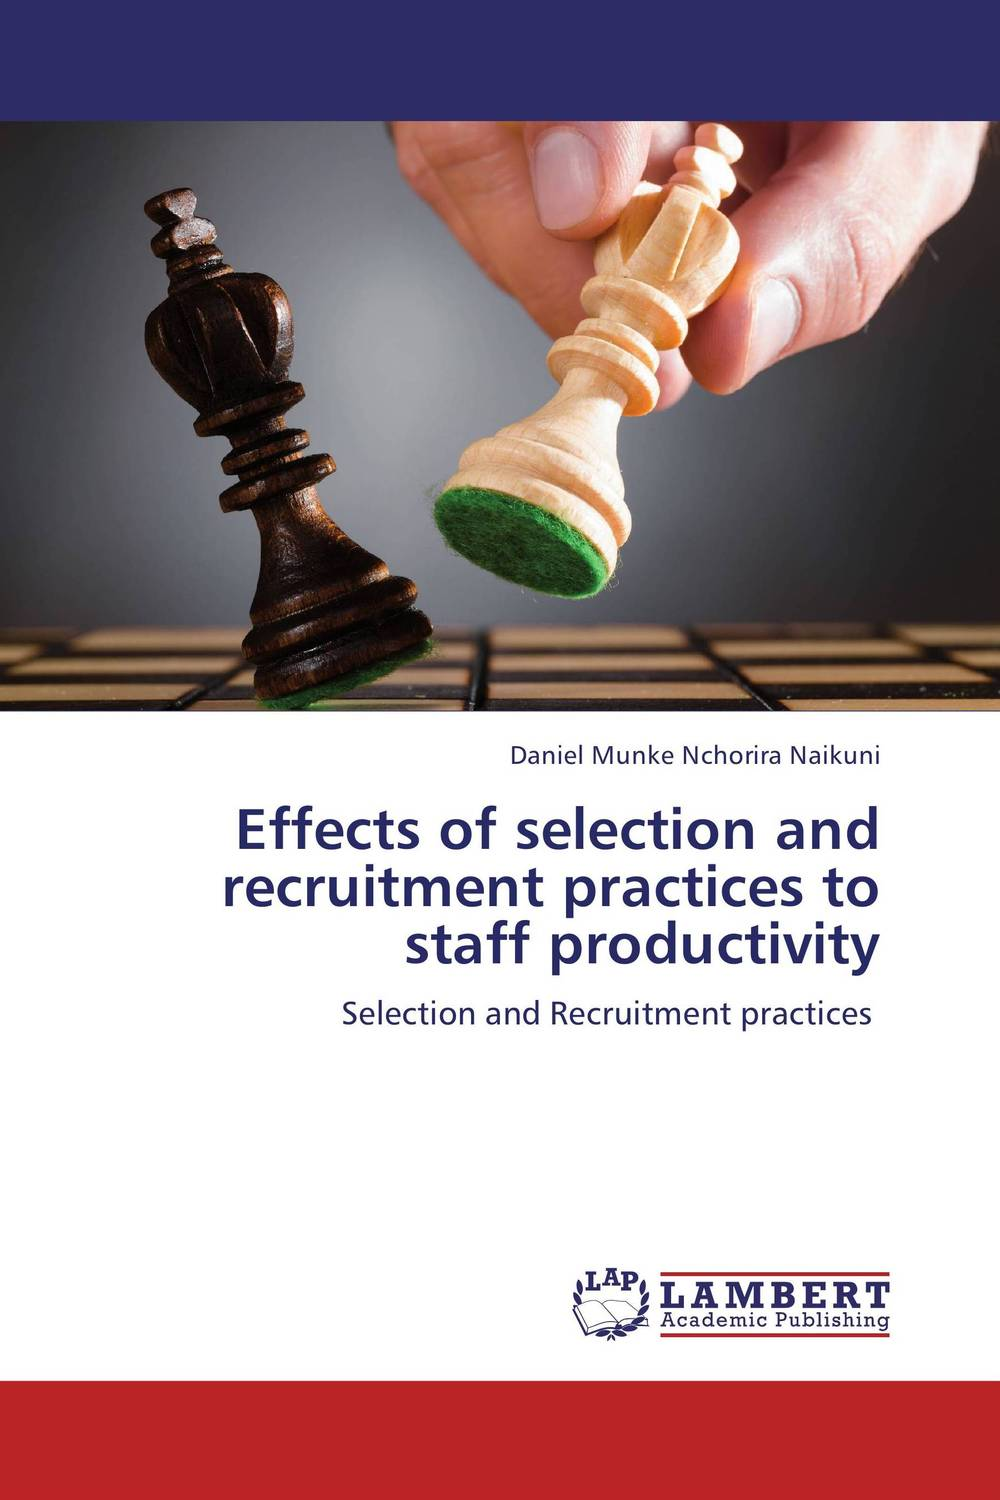 Effects of selection and recruitment practices to staff productivity